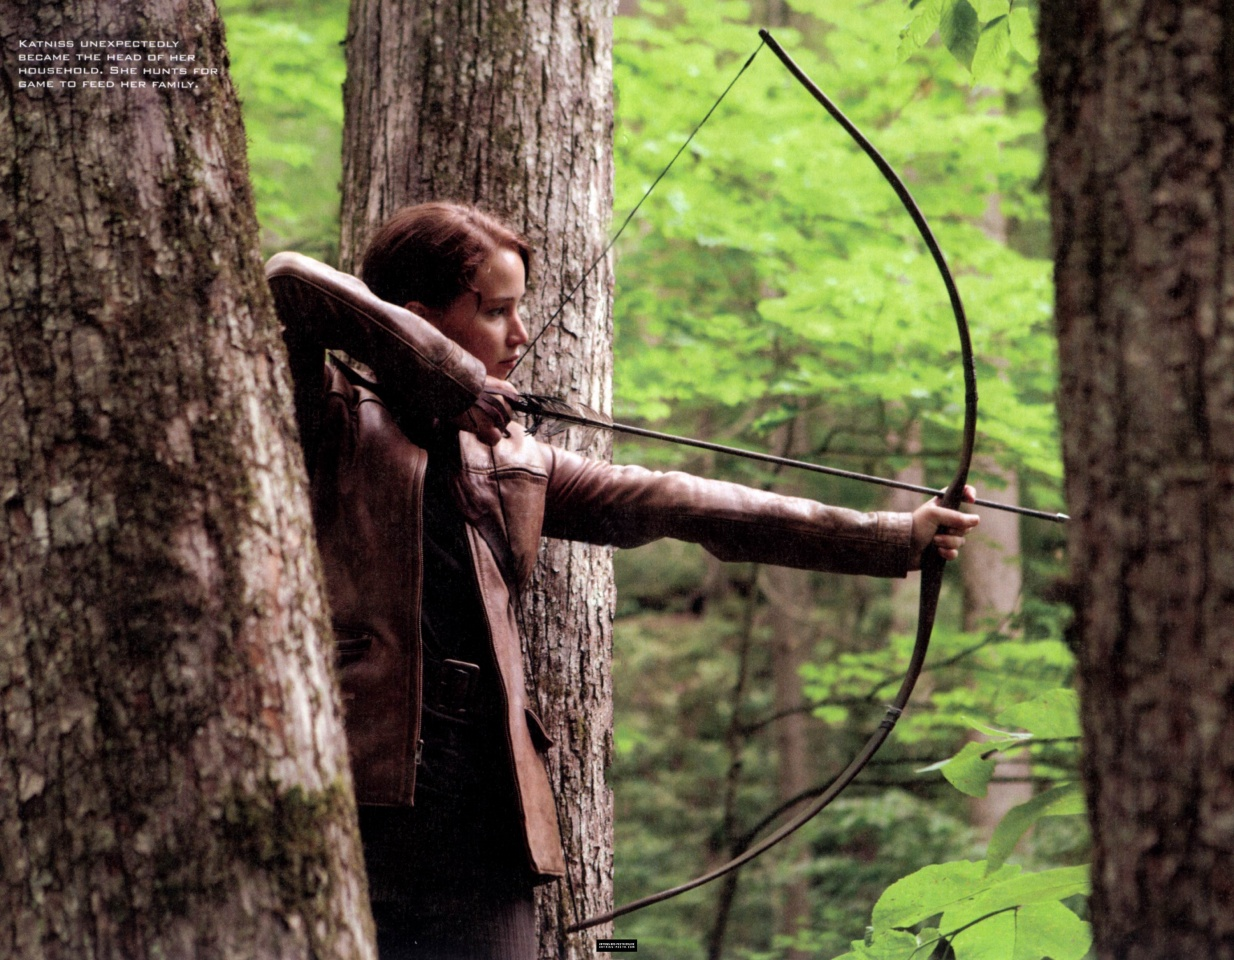 the world of hunger games magazine scans more stills from the katniss hunts to bring food for her family